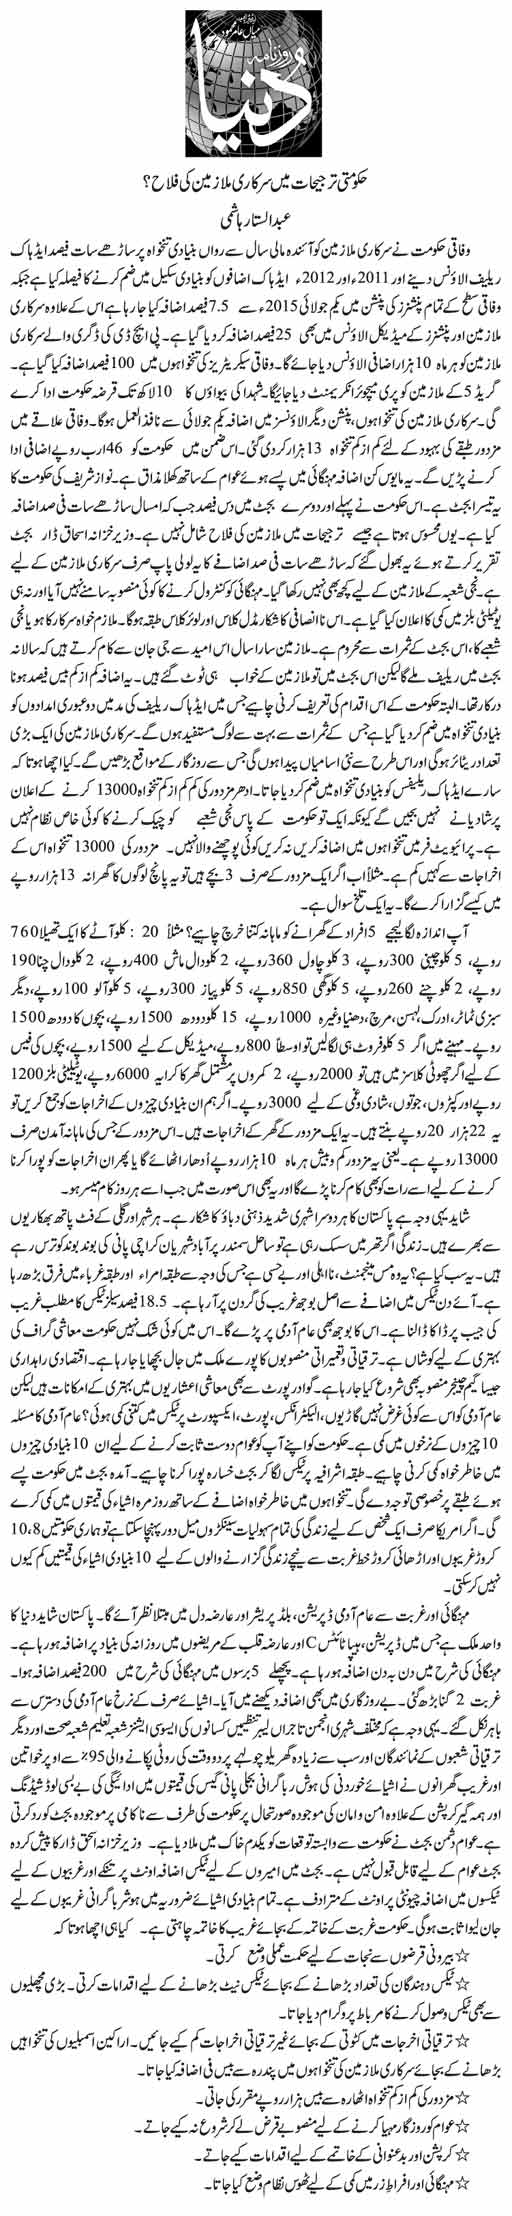 Abdul sattar hashmi Article on Employees Welfare and Government Priorities in Daily Dunya Dated June 6, 2015